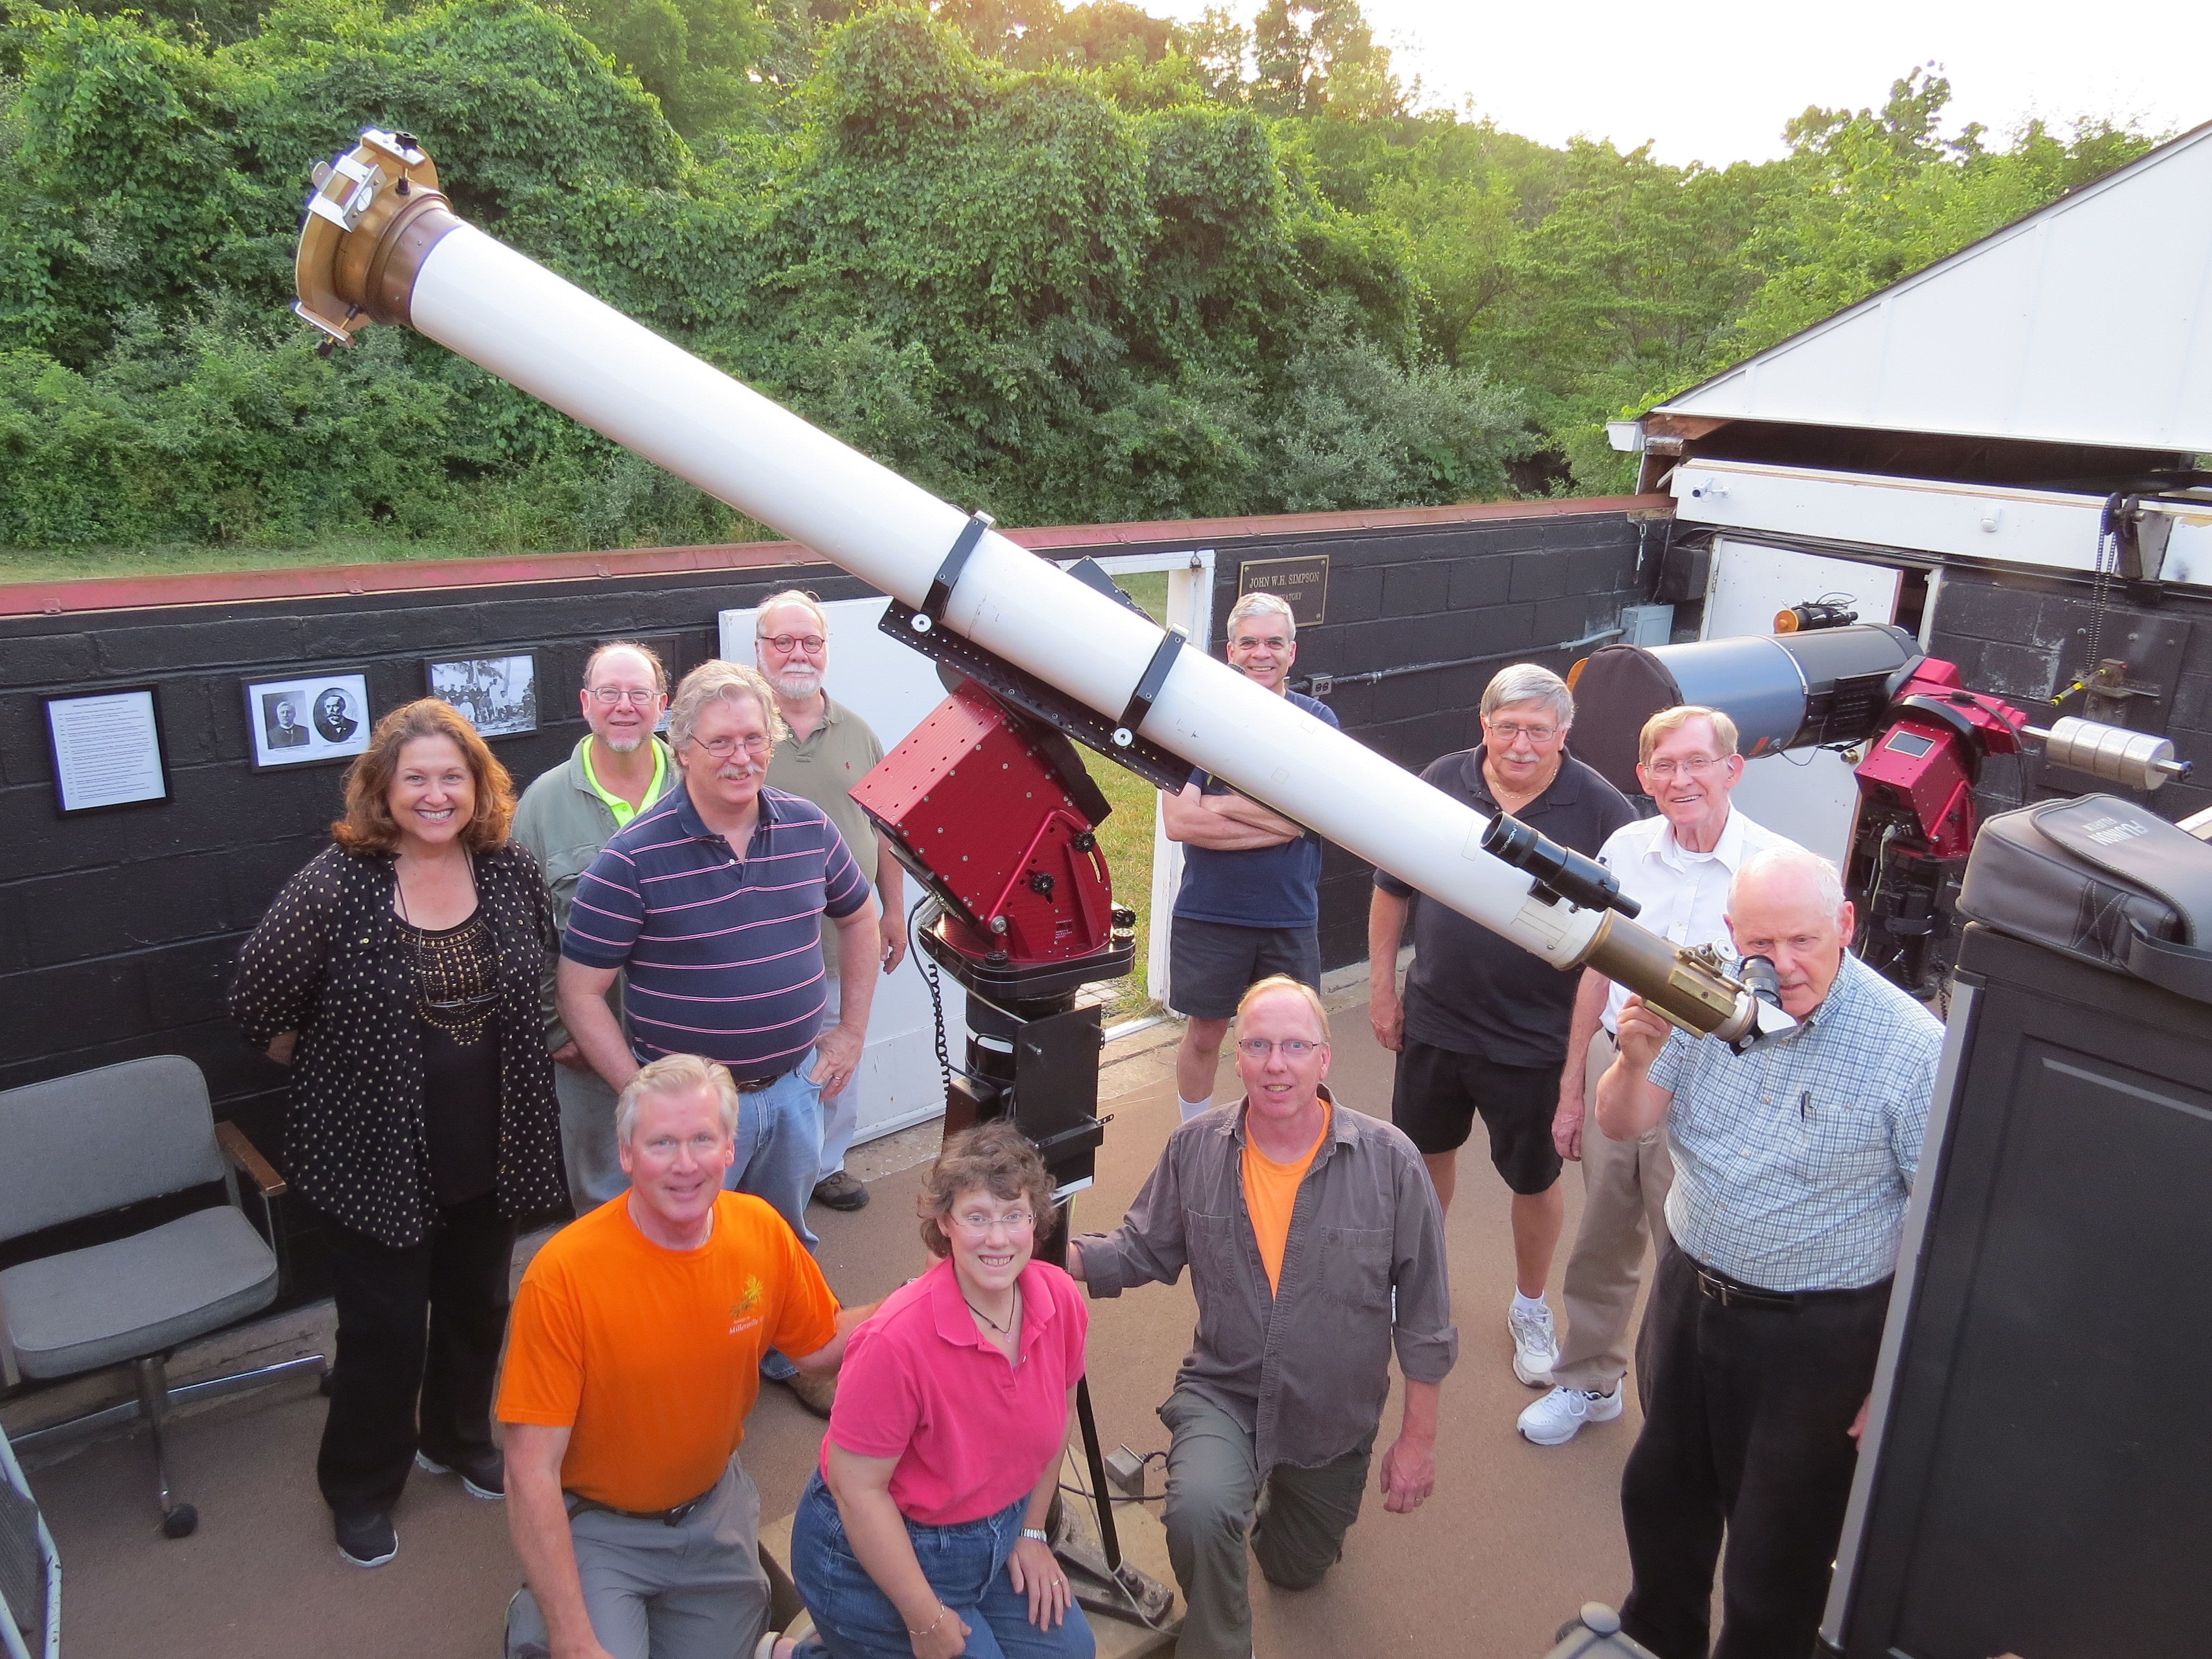 Observatory open to the public